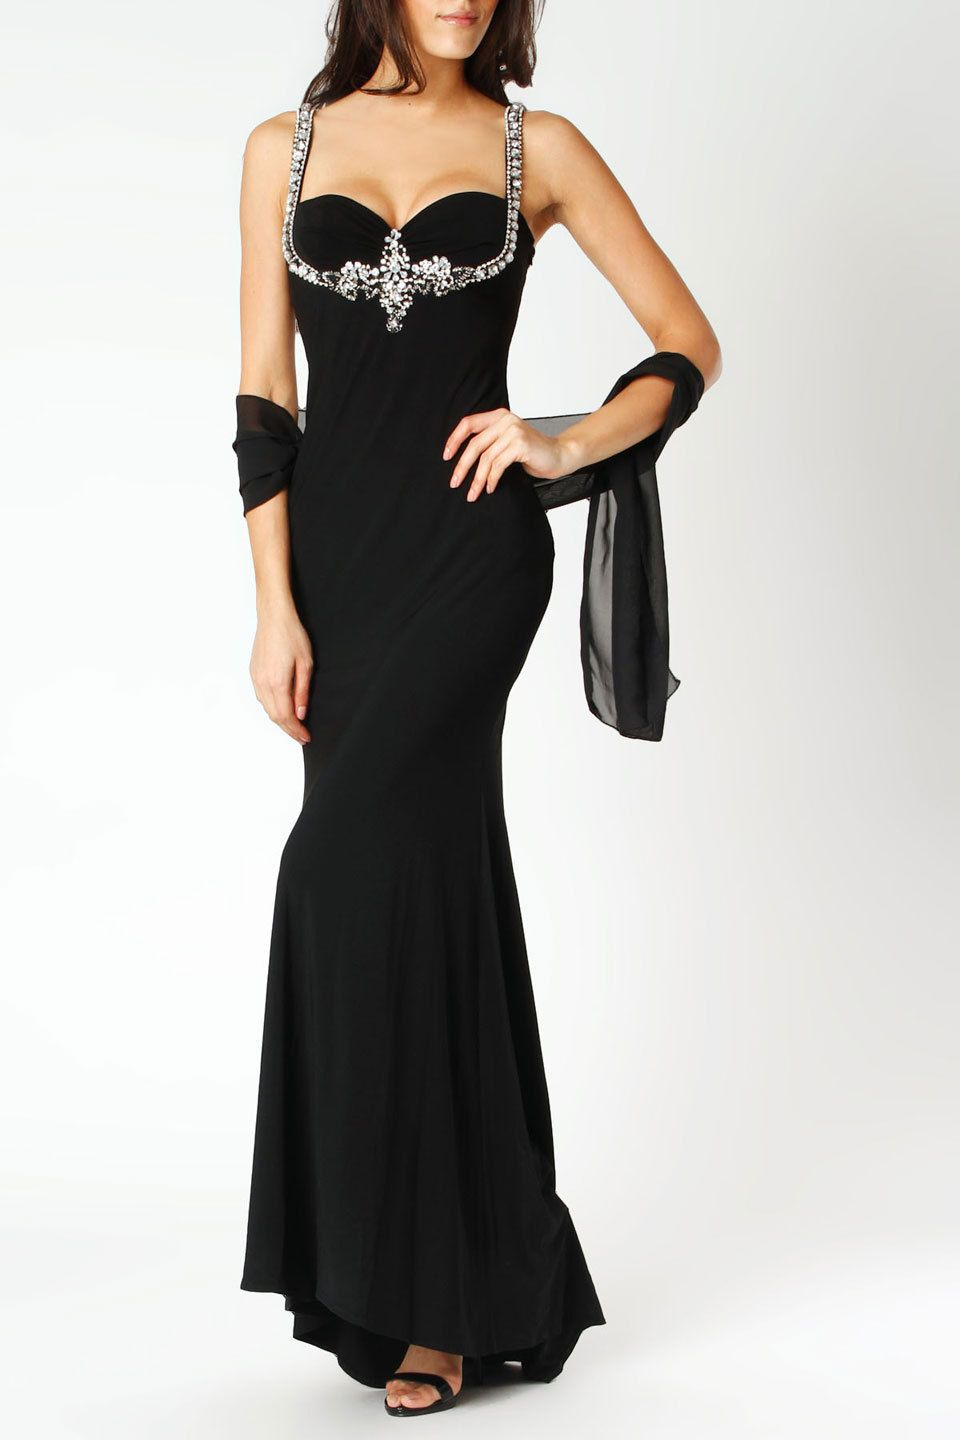 Belle gown in black dress pinterest belle gowns and footwear